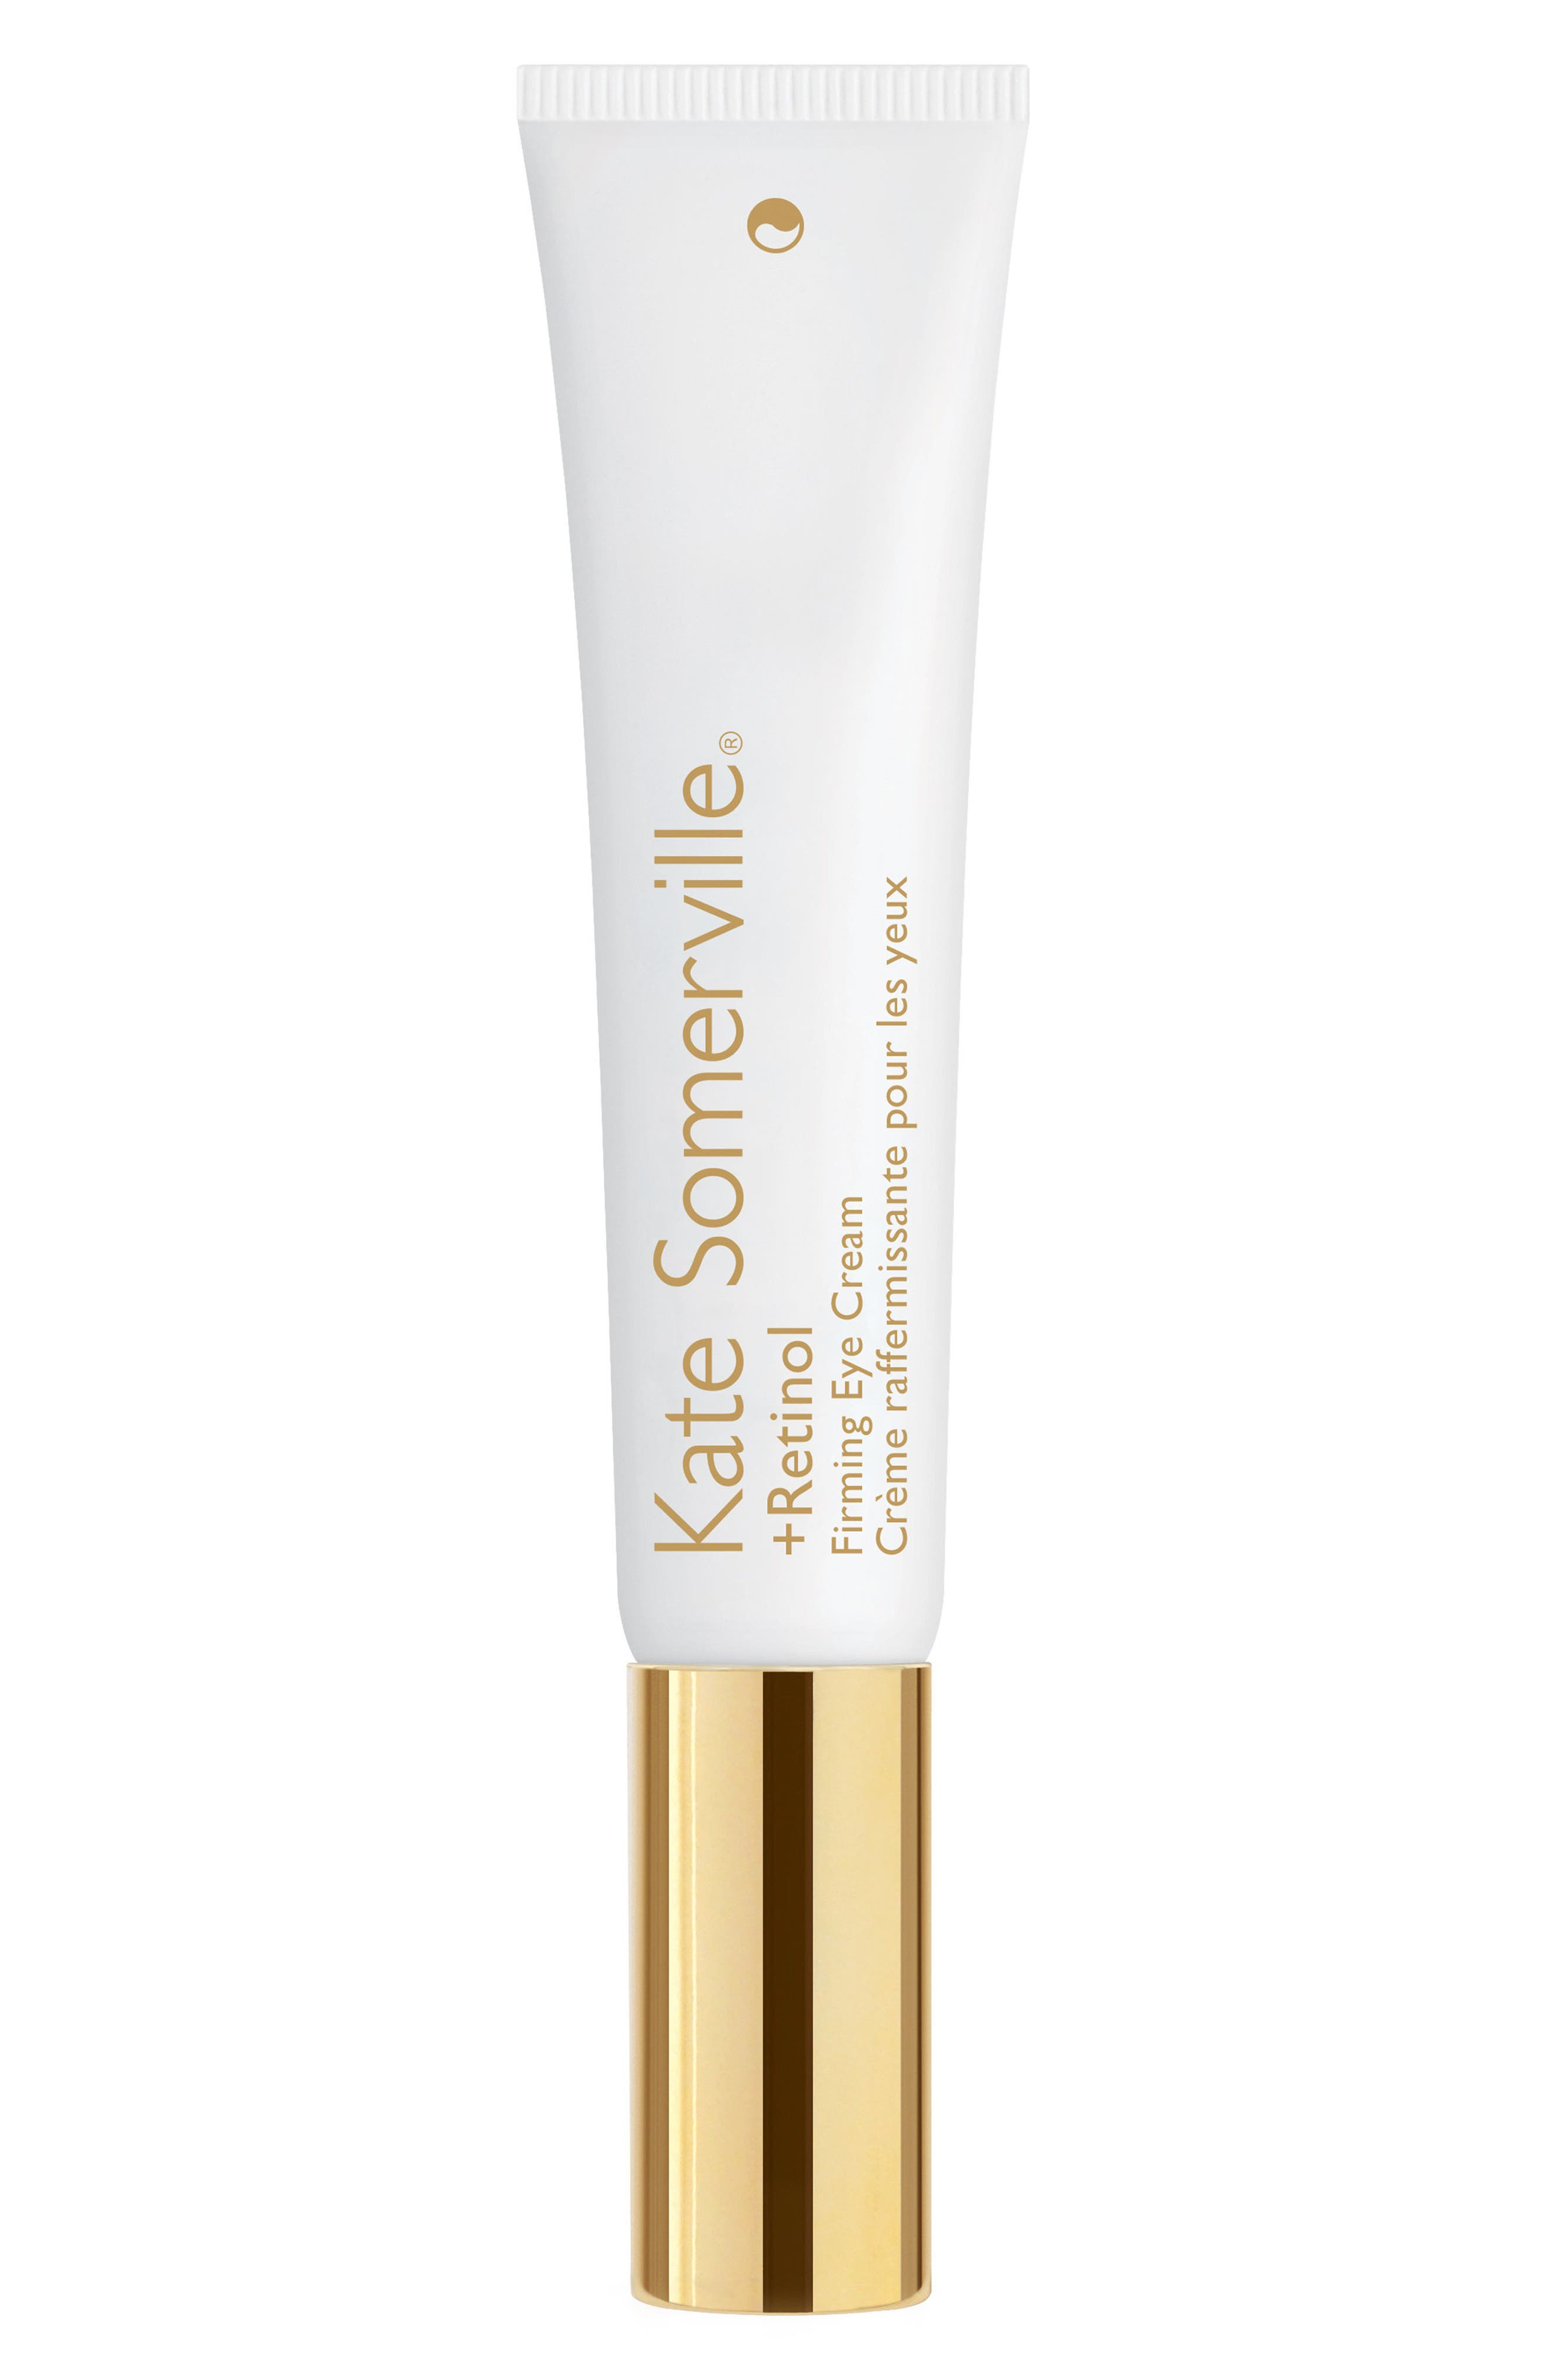 Main Image - Kate Somerville® +Retinol Firming Eye Cream